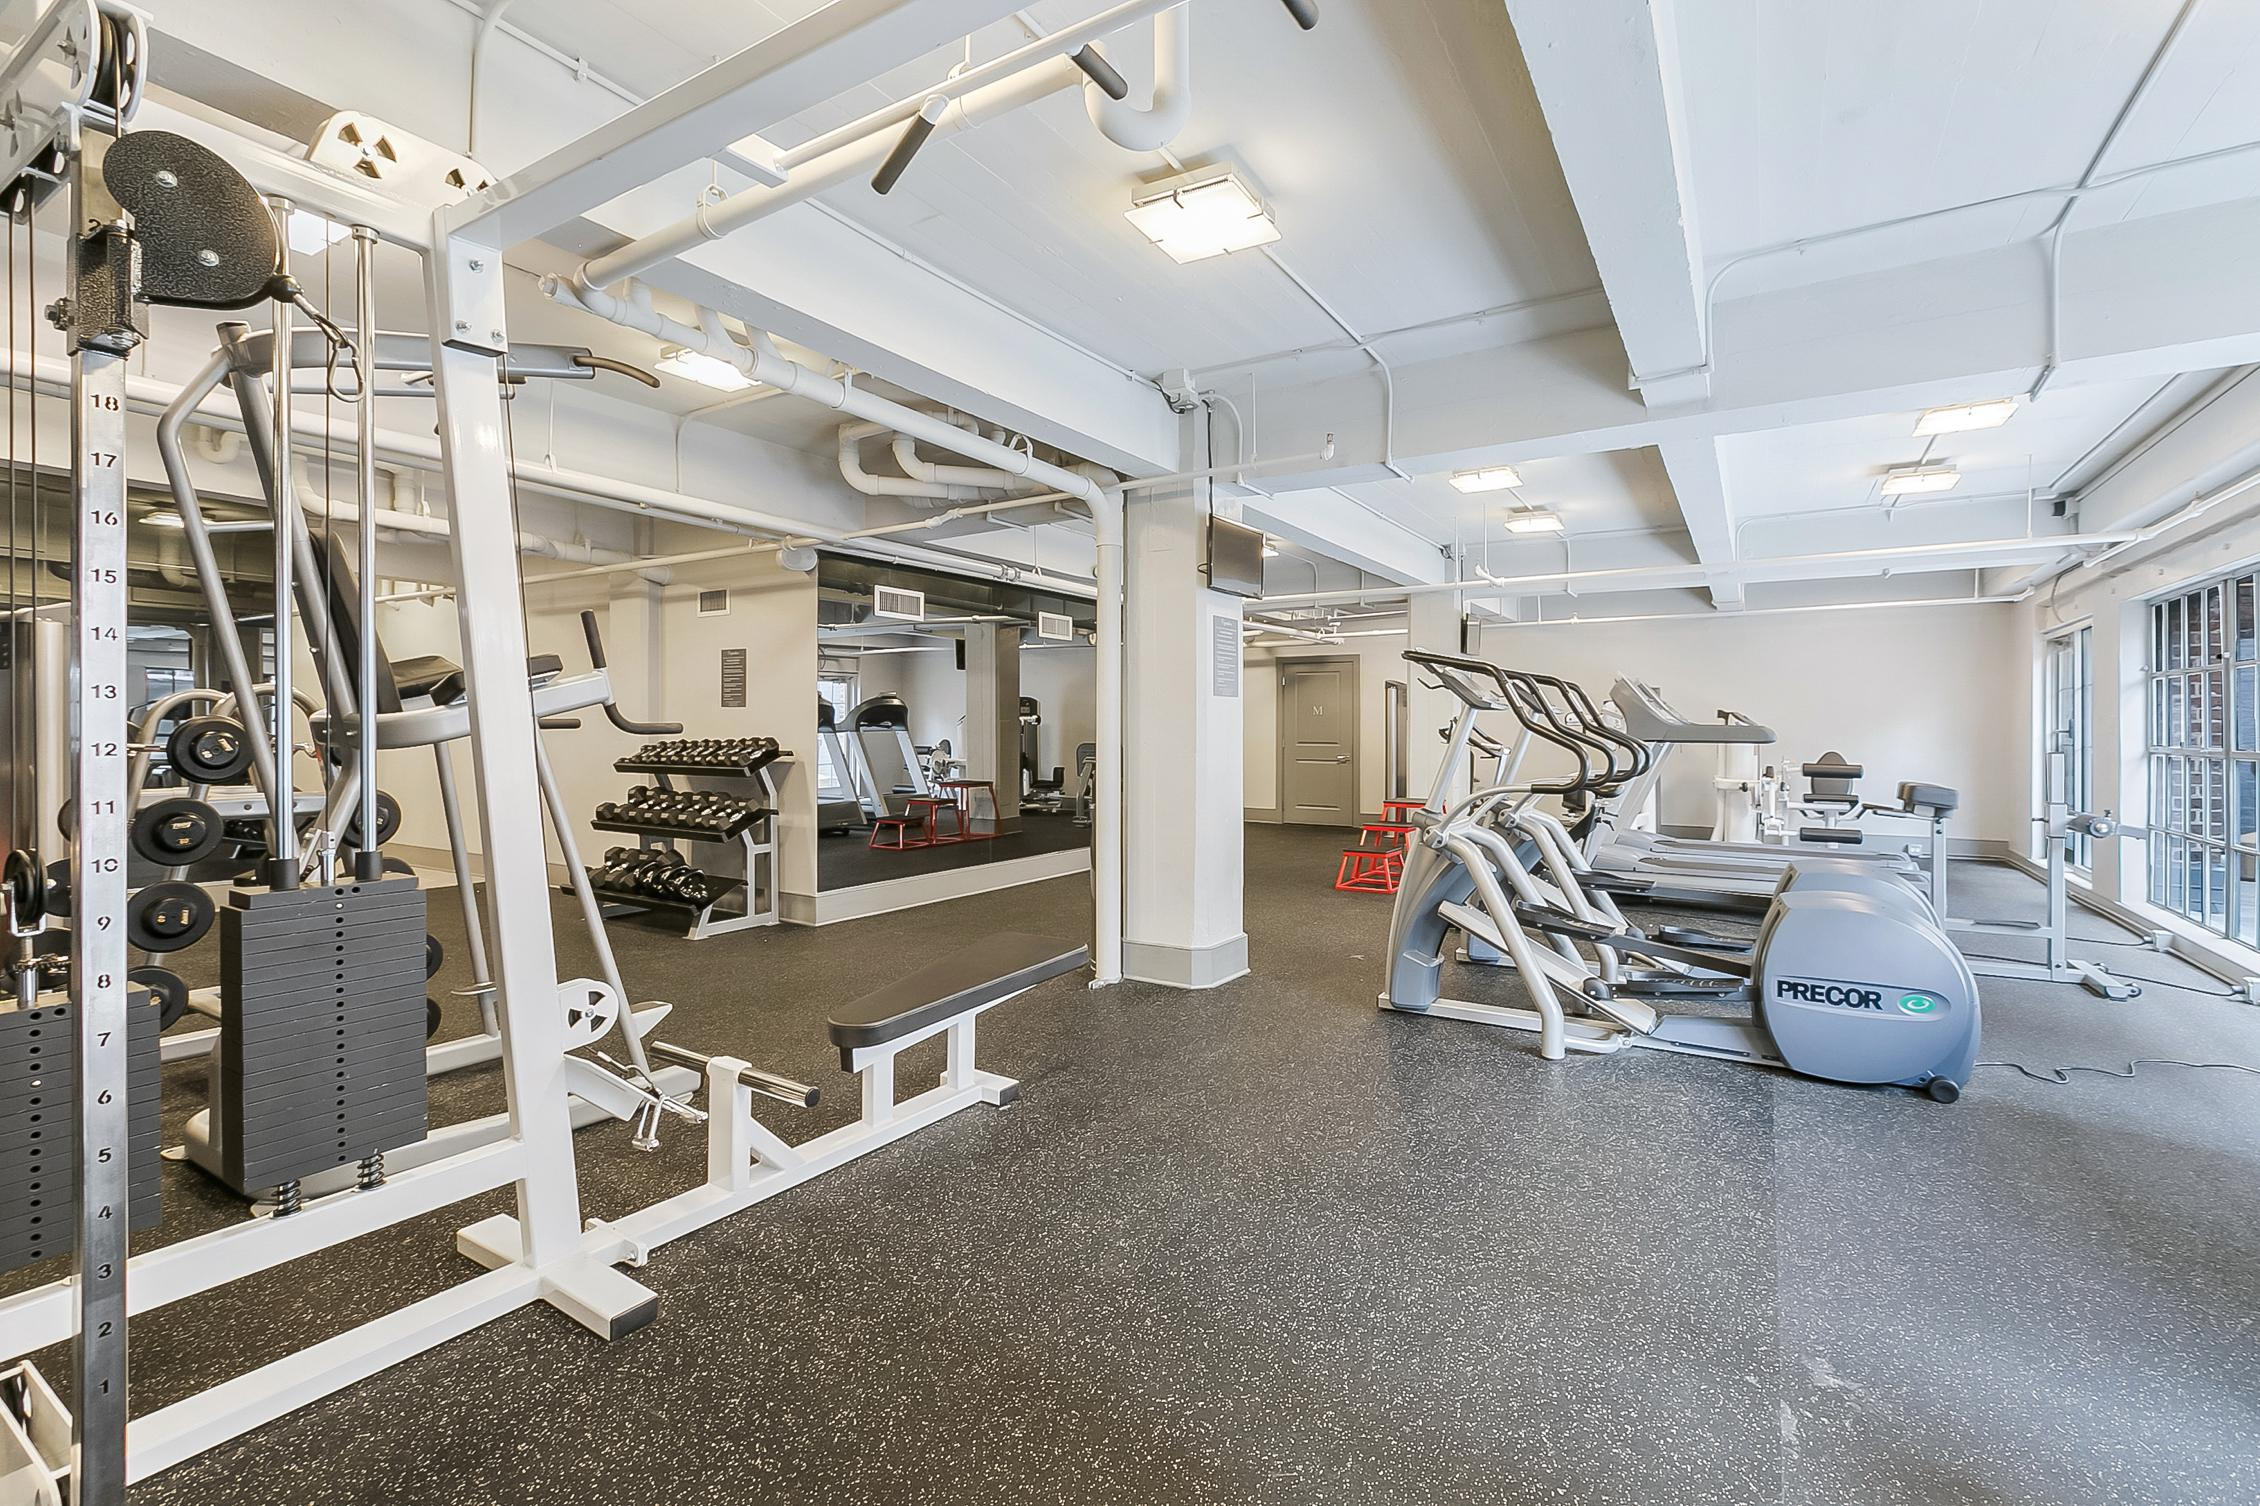 Crystalline bienville st new orleans apartment for rent gym